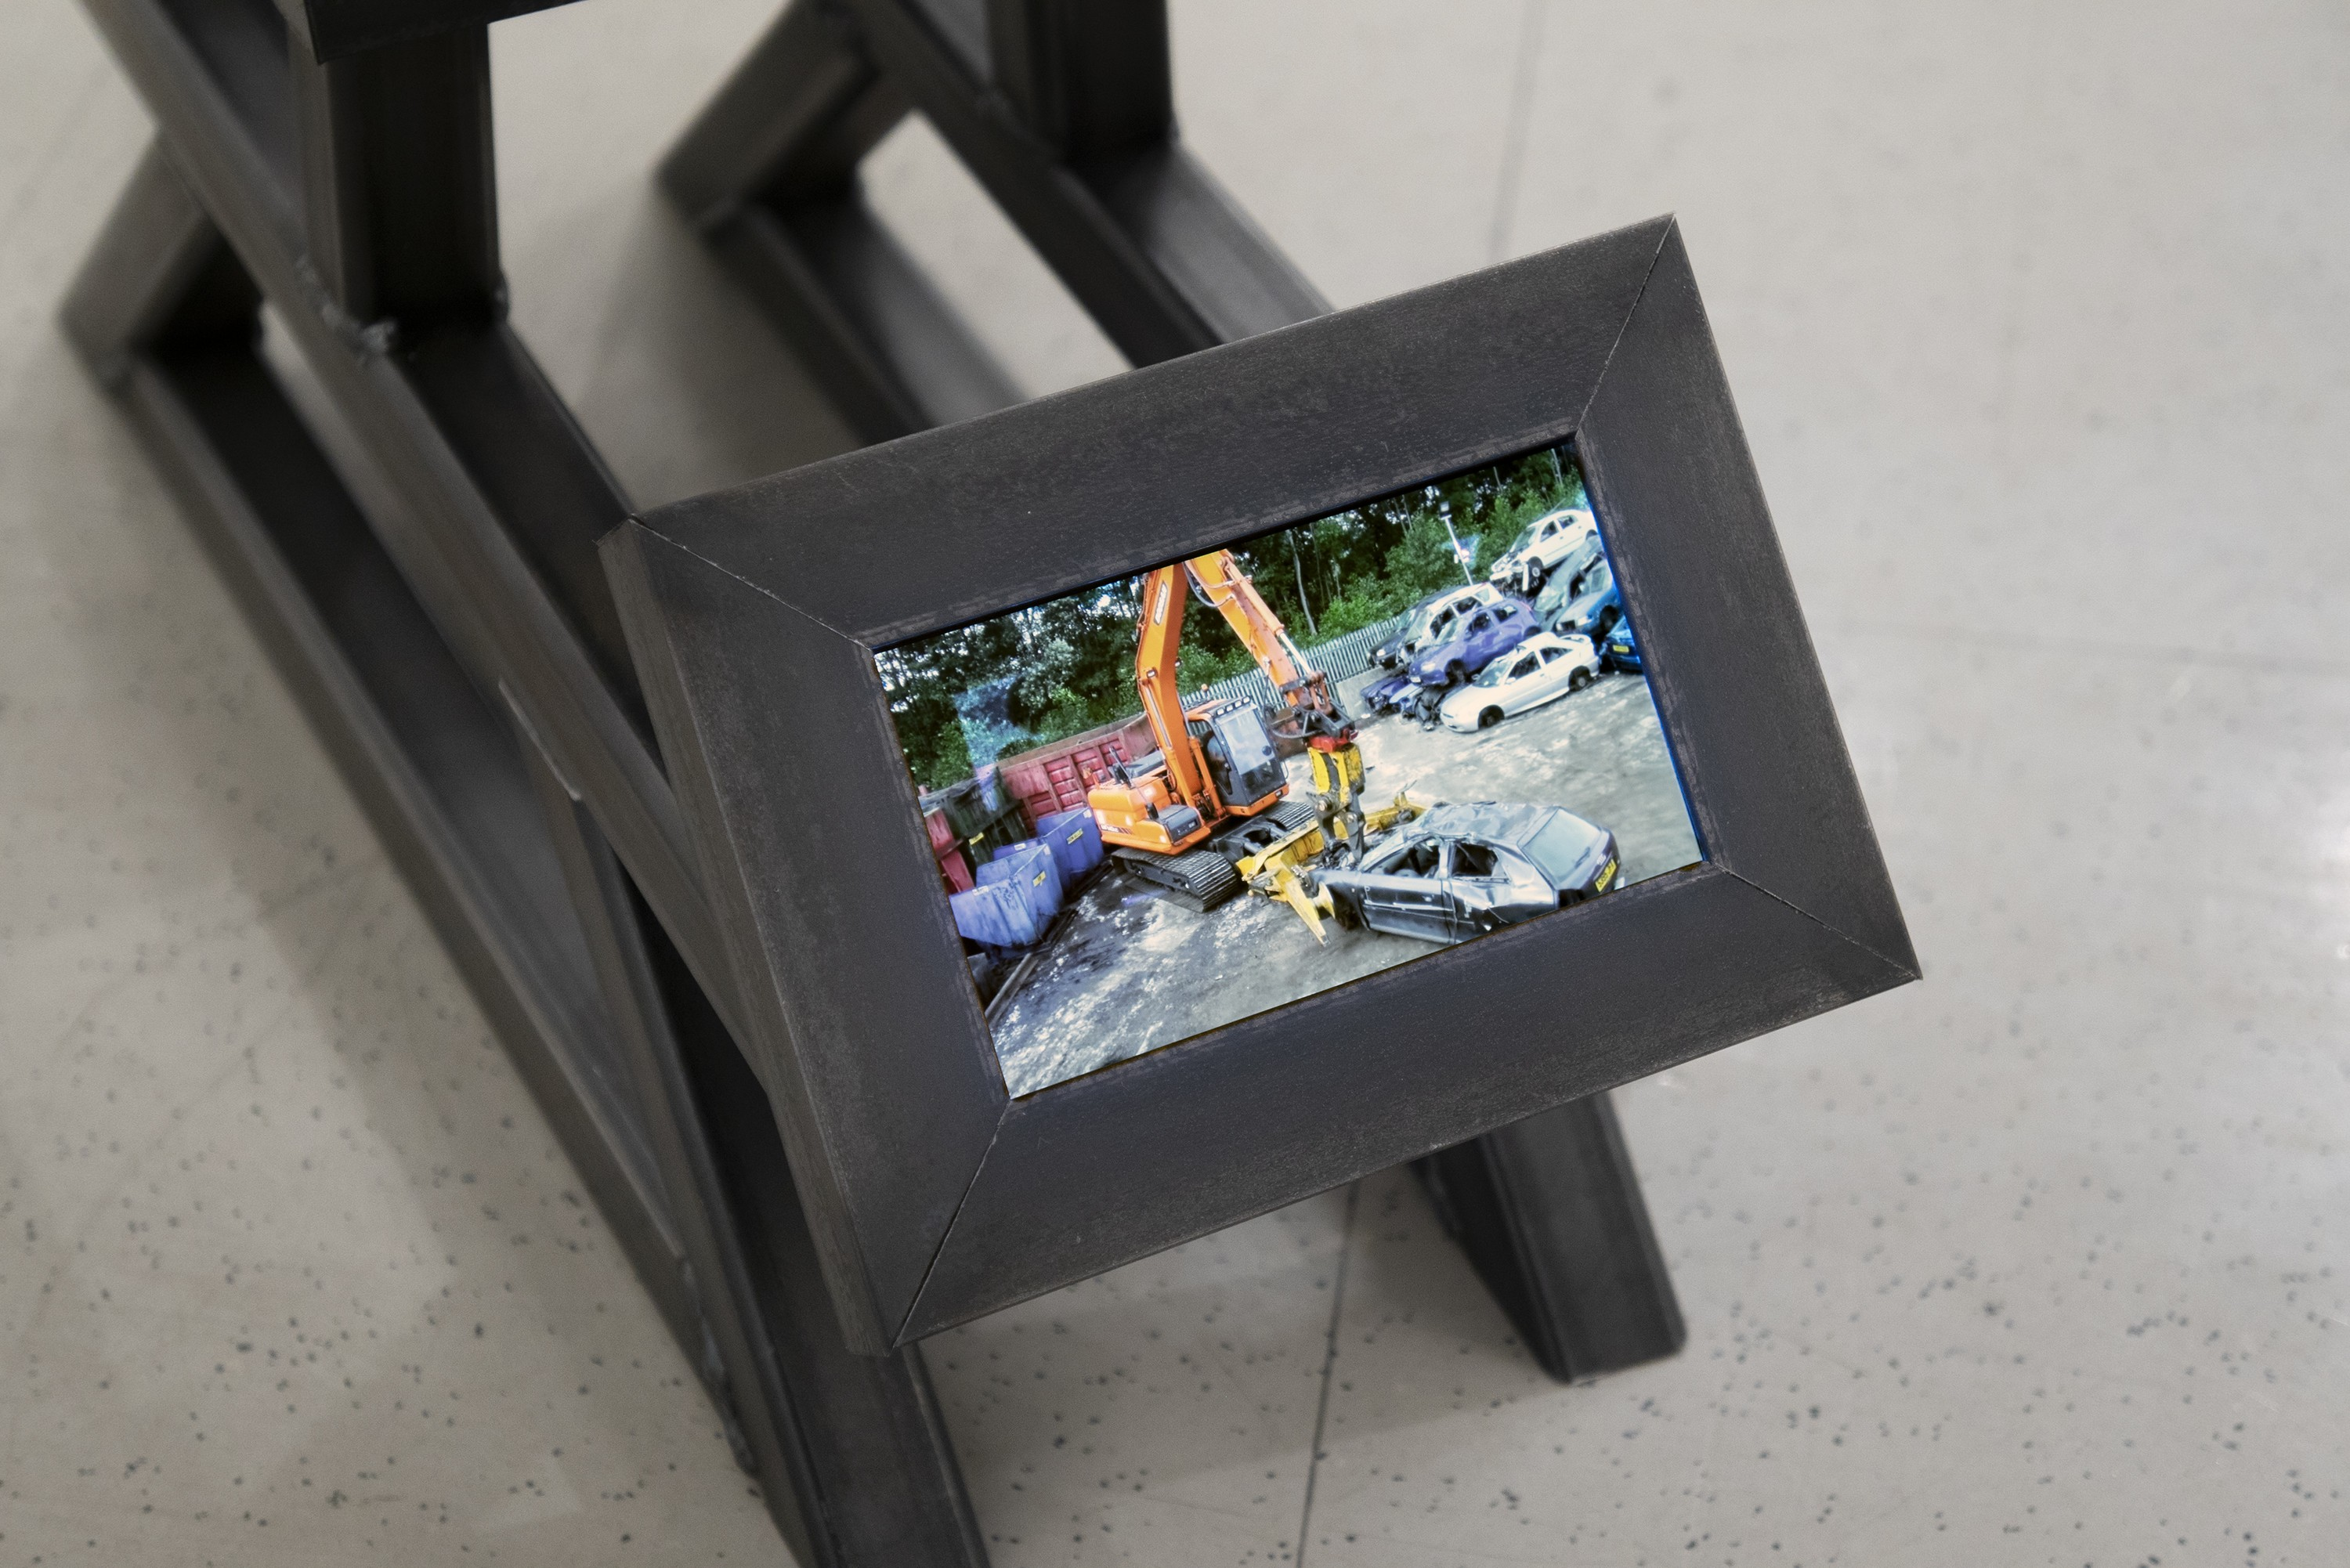 A floor sculpture consisting of a steel frame modeled after a car chassis holding three small screens. One screen faces forward, another up, and another backward. One plays a video of cars being scrapped, another plays a home movie of someone showing frie